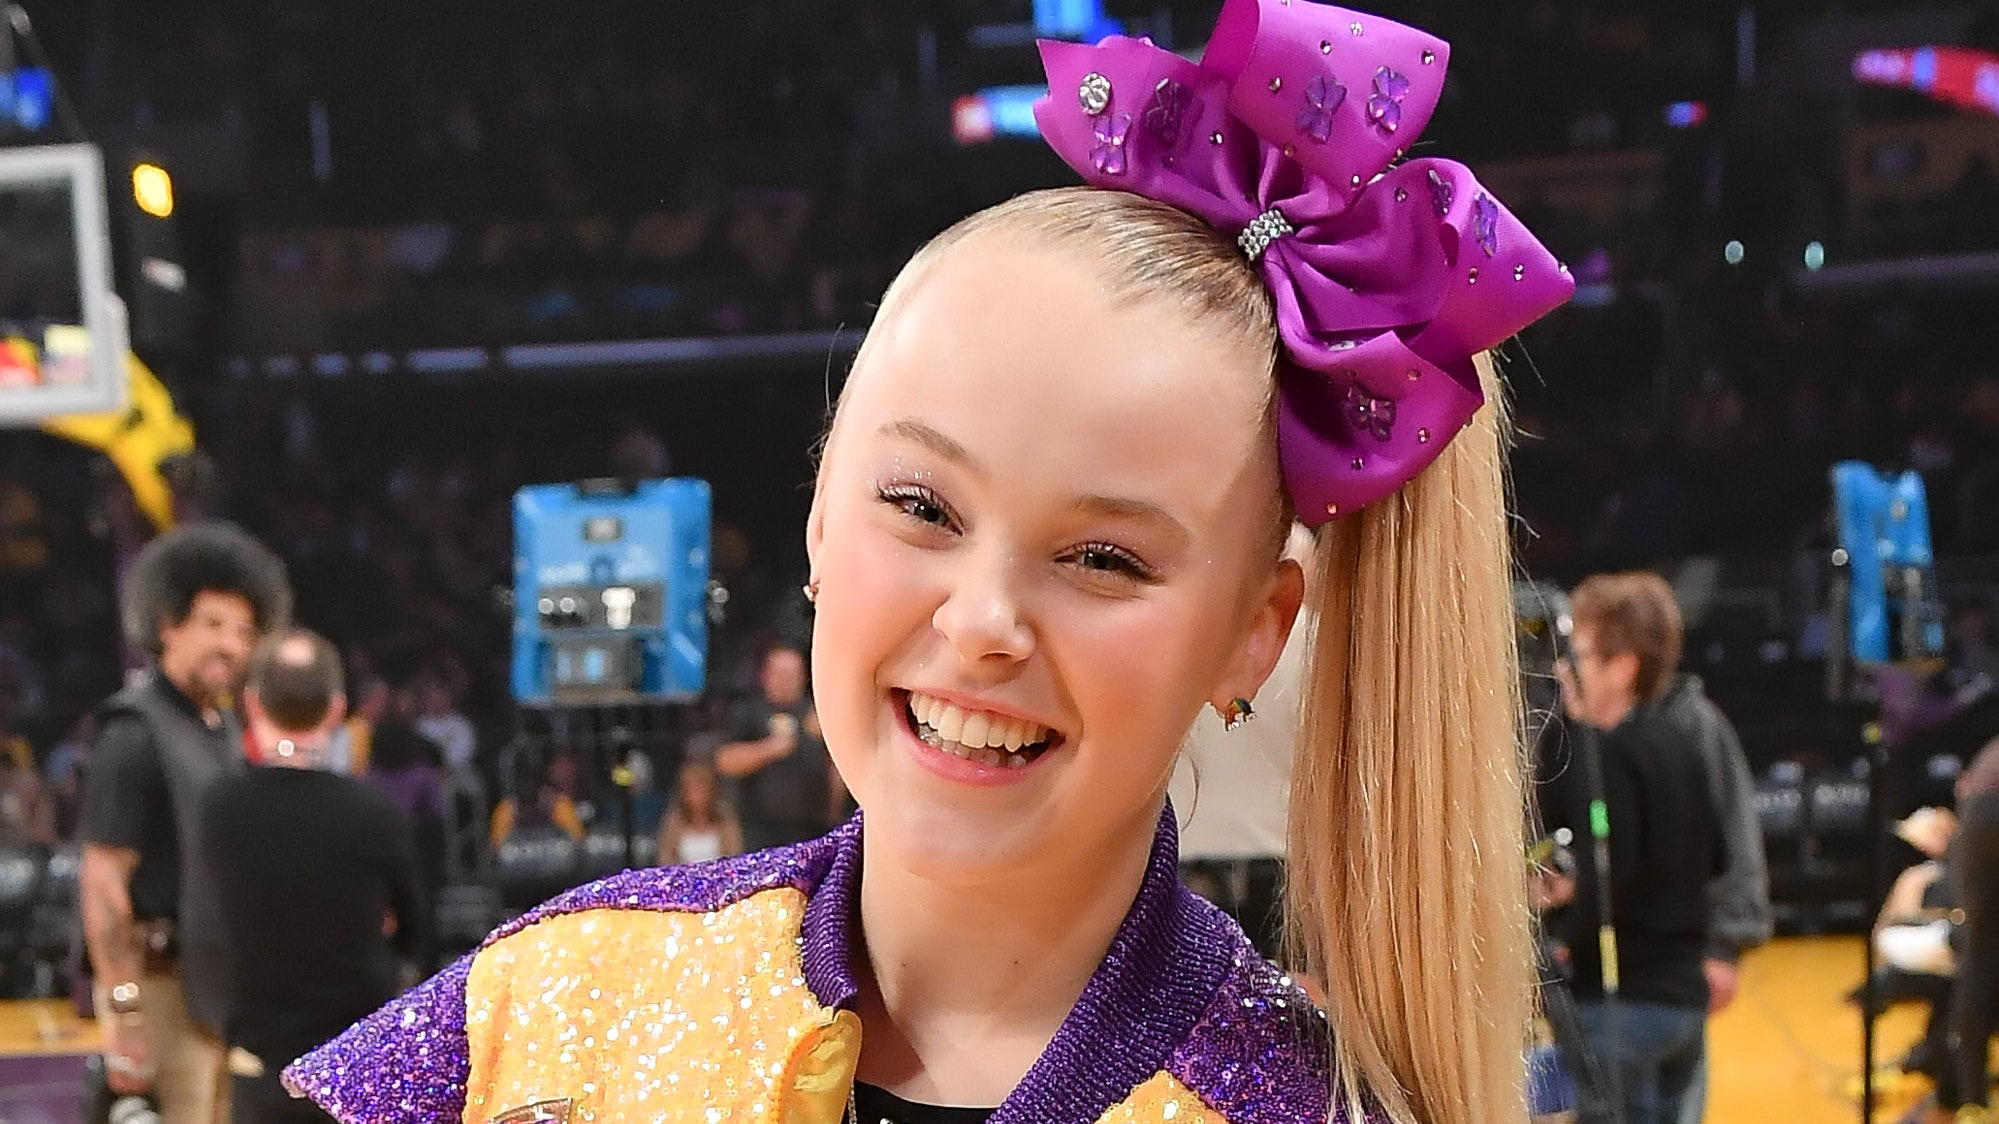 jojo-siwa-comes-out-in-a-unique-way-and-many-show-her-support